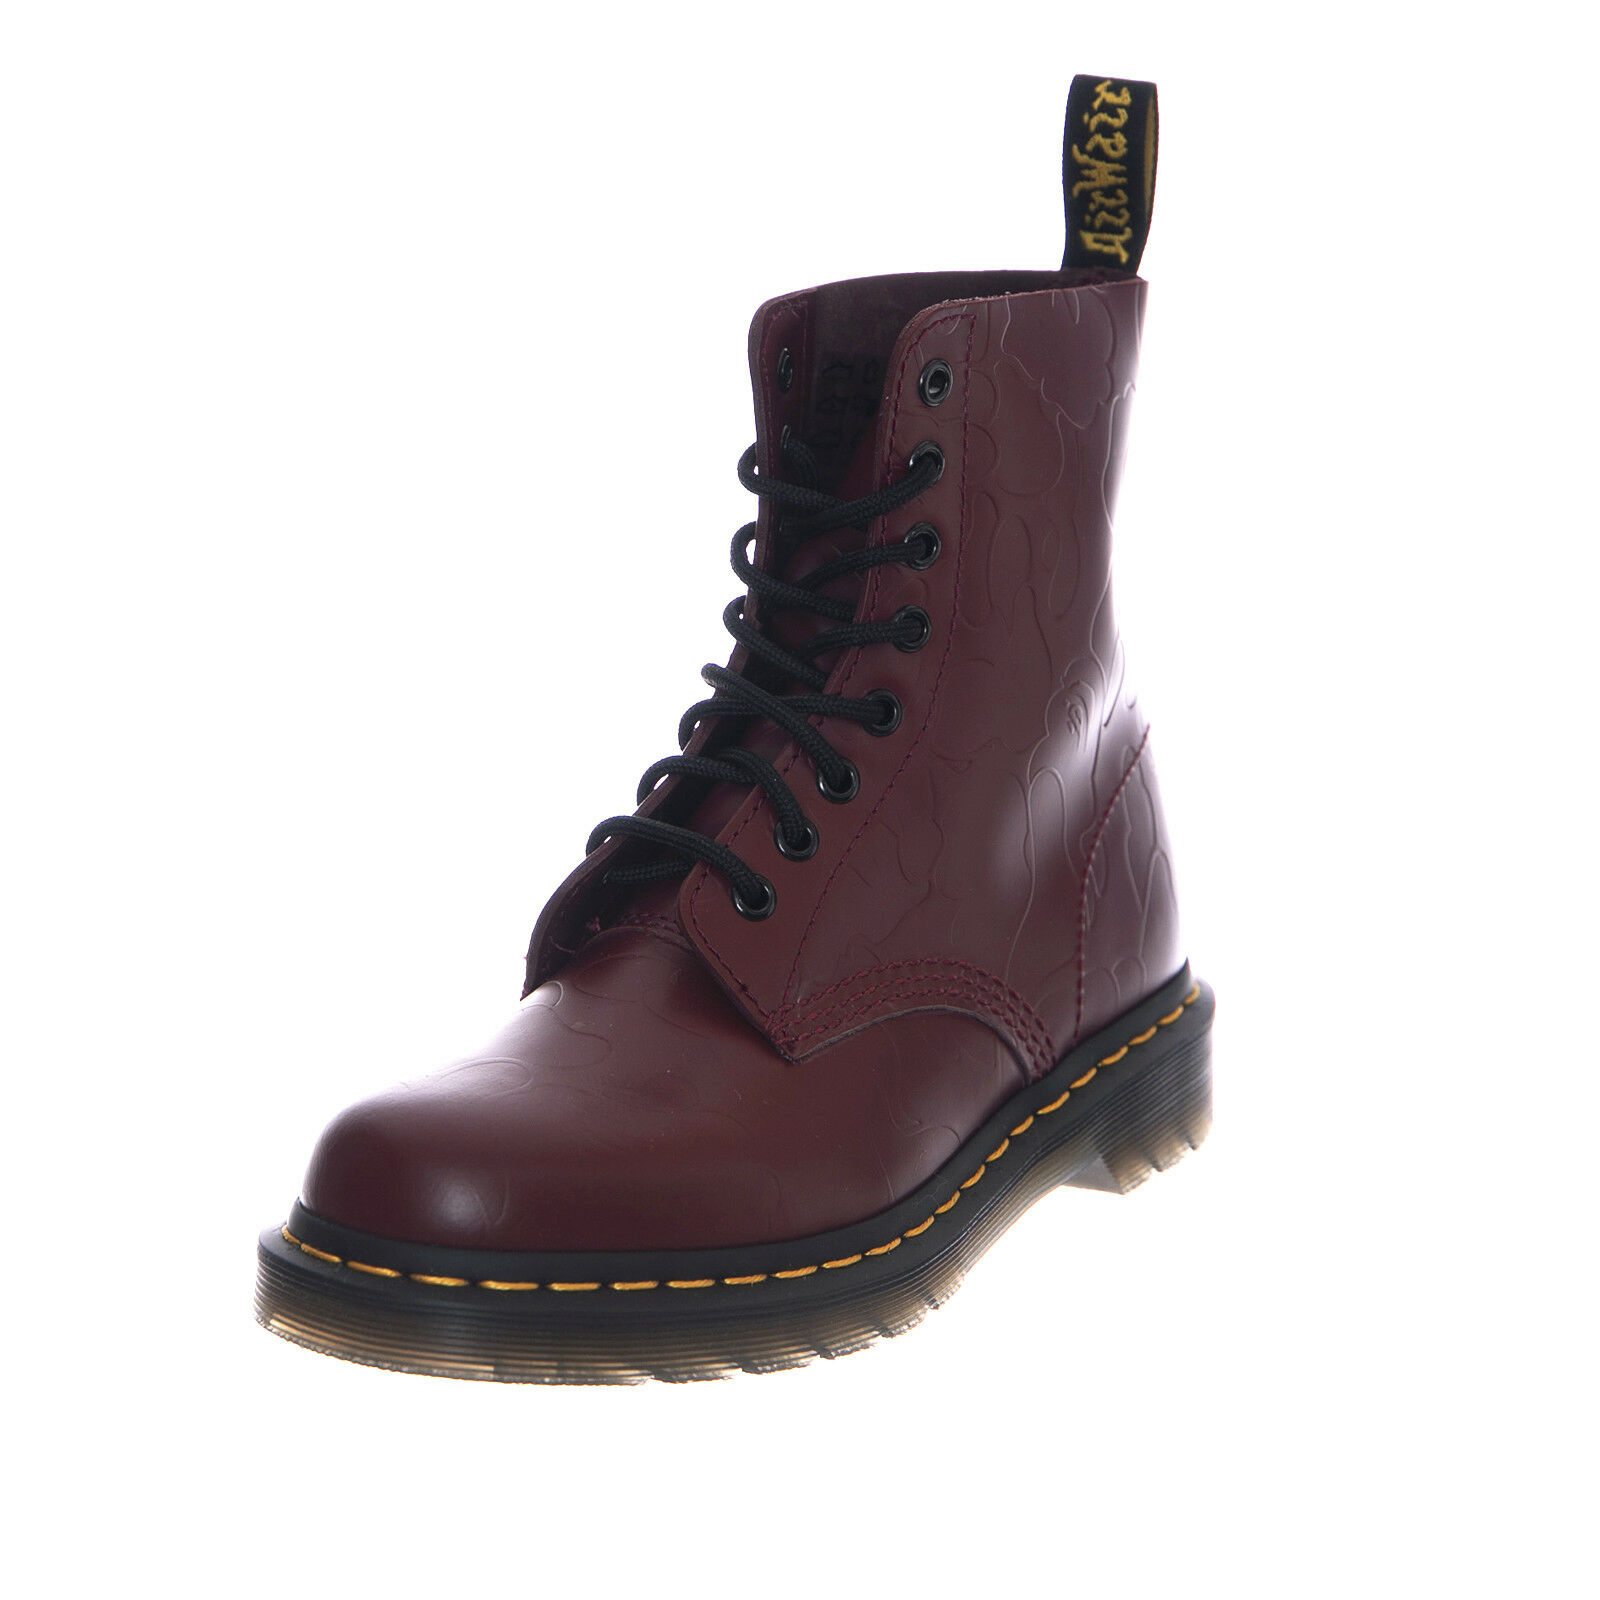 Dr.Martens Boots 1460 Bape Cherry Red Smooth Emboss Burgundy